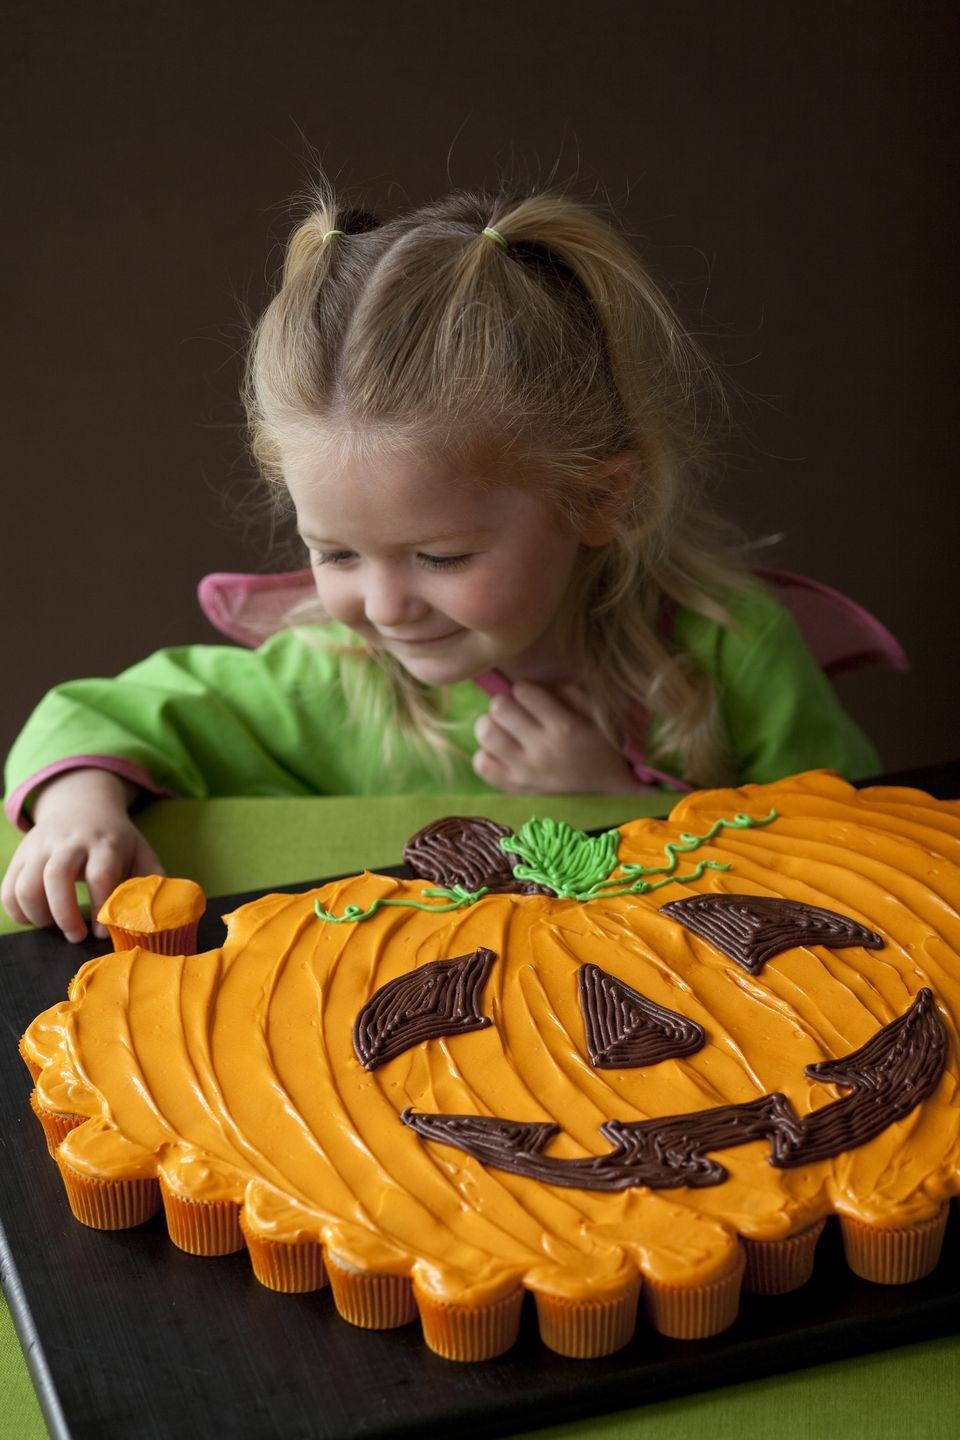 """<p>There's nothing more classically Halloween than a pumpkin, so why not create a giant pumpkin cake out of dozens of cupcakes?</p><p><em><a href=""""https://www.womansday.com/food-recipes/food-drinks/recipes/a11046/pumpkin-patch-pull-apart-recipe-122474/"""" rel=""""nofollow noopener"""" target=""""_blank"""" data-ylk=""""slk:Get the recipe for Pumpkin Patch Pull-Apart Cake."""" class=""""link rapid-noclick-resp"""">Get the recipe for Pumpkin Patch Pull-Apart Cake.</a>.</em></p>"""